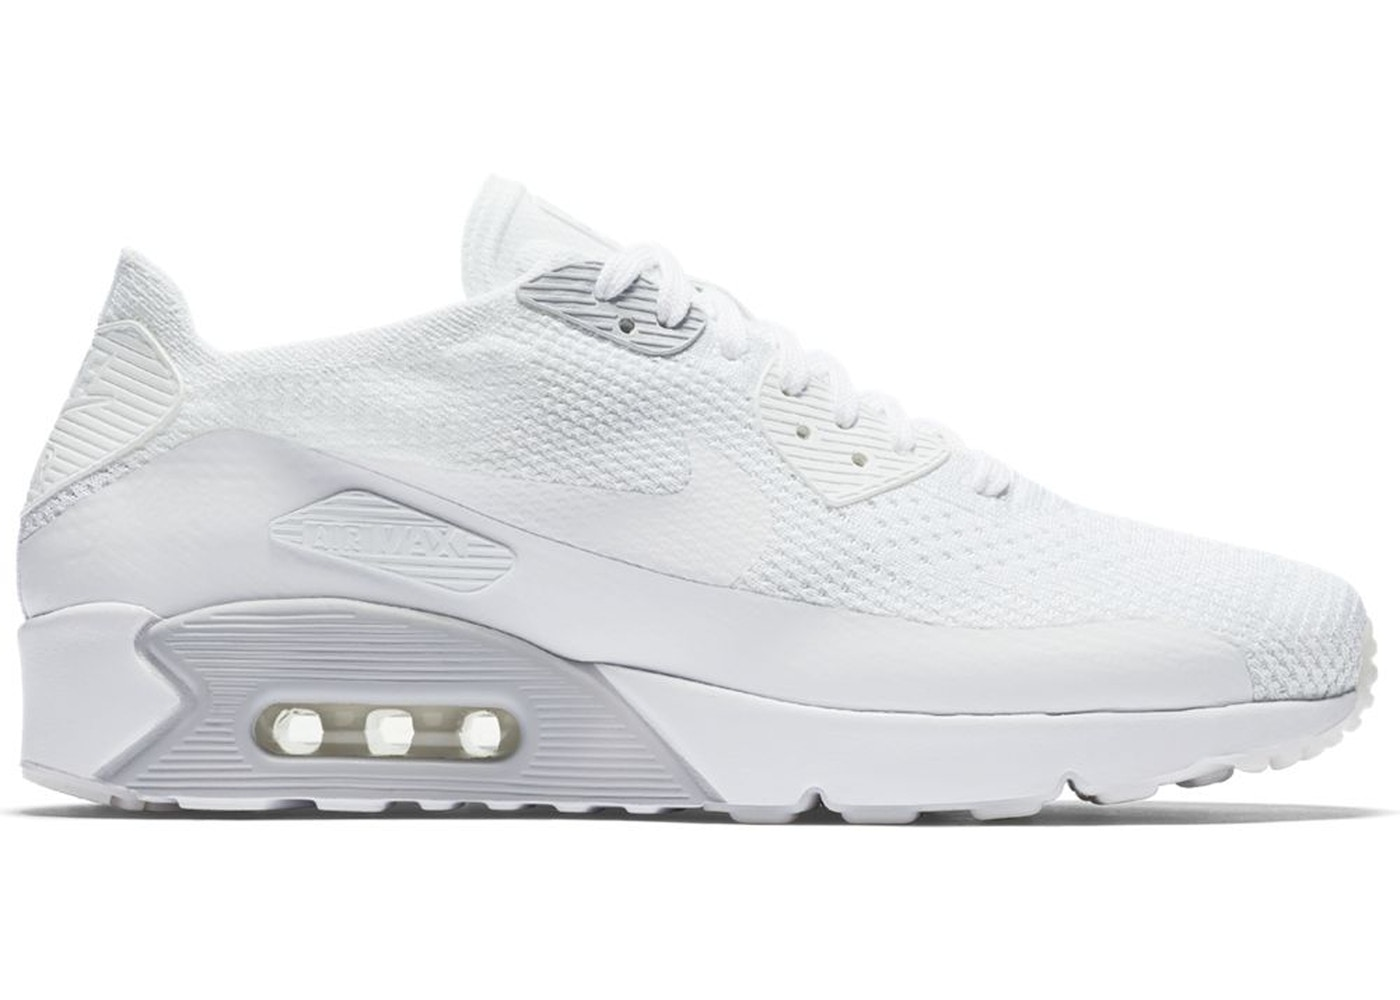 half off a3536 a3029 Buy Nike Air Max 90 Shoes   Deadstock Sneakers